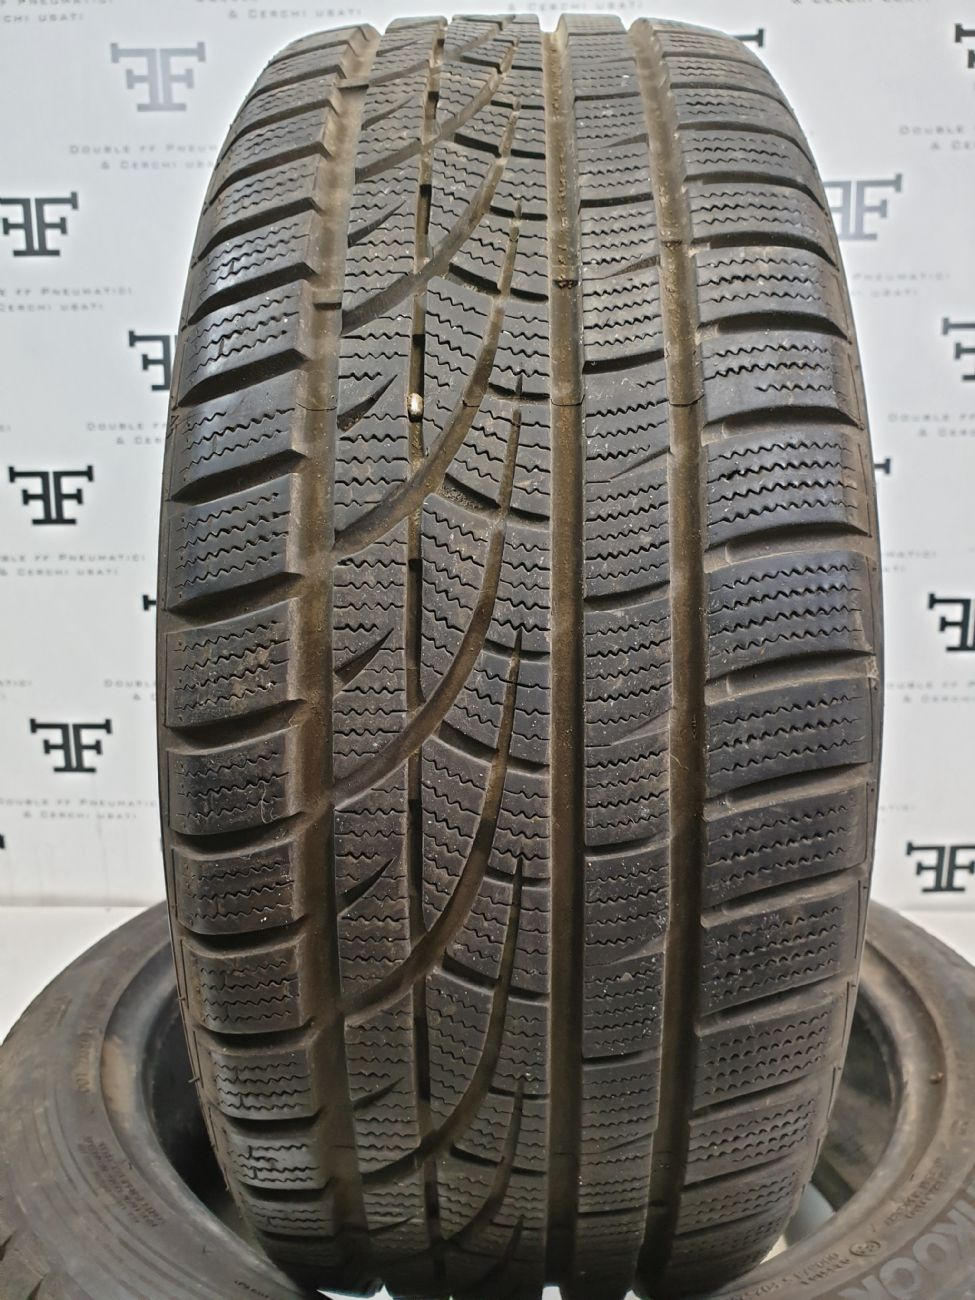 Pneumatici 245 40 R18 97 V HANKOOK WINTER  INCEPT EVO invernale usati 120€